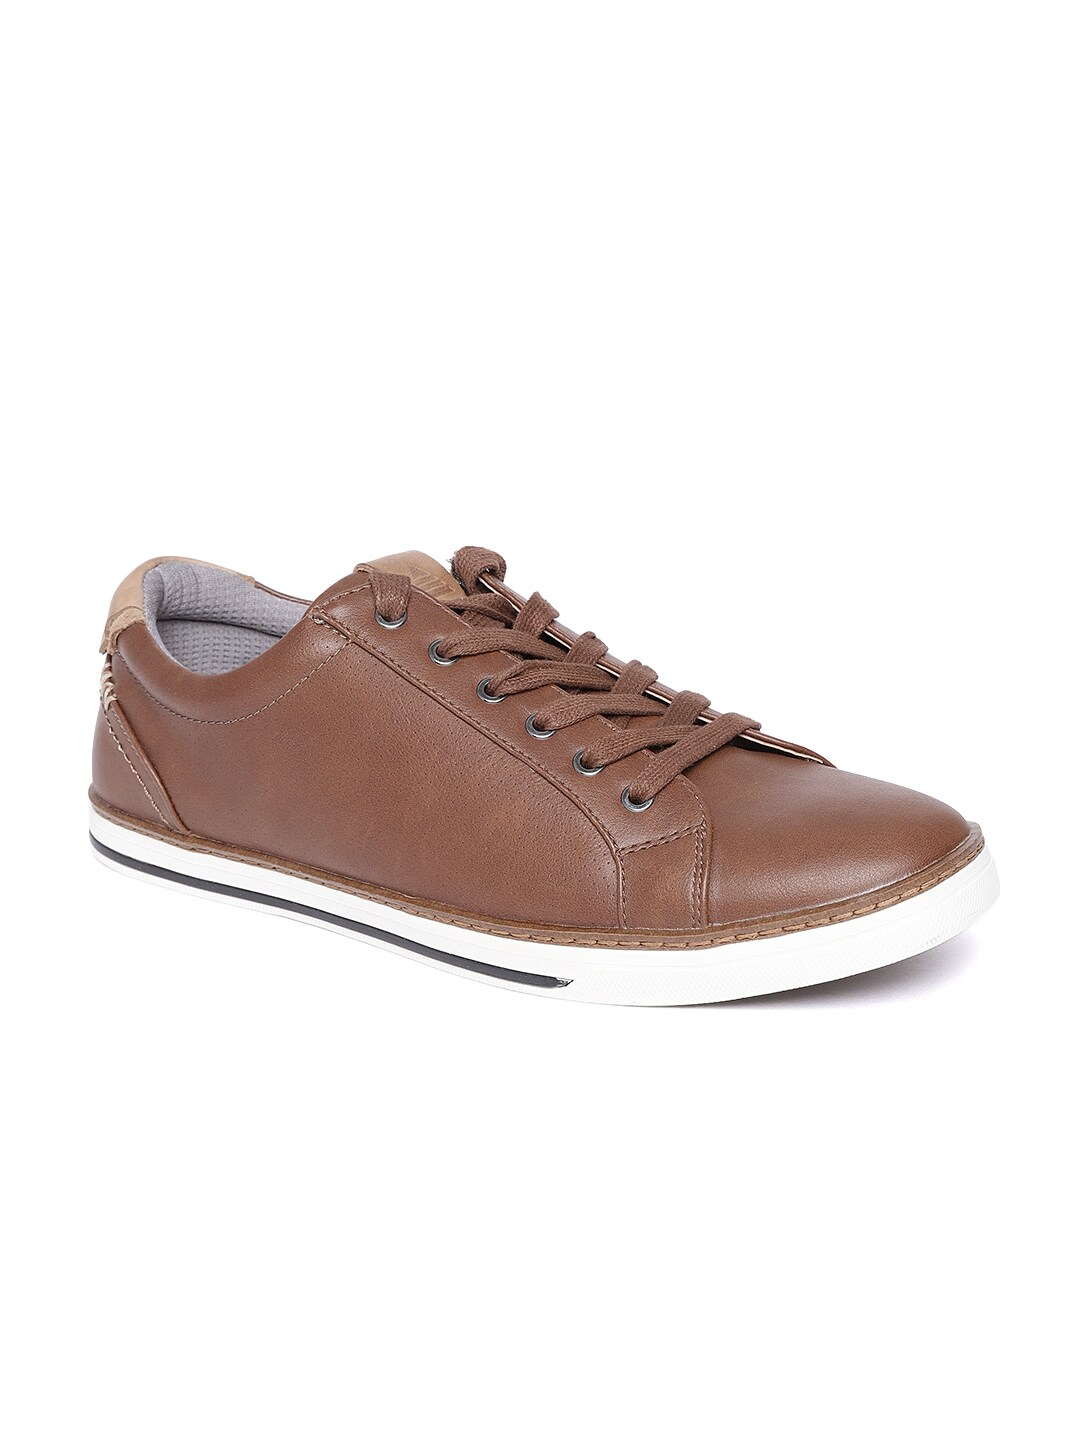 d0c3d9230650 Aldo Shoes For Men - Buy Aldo Shoes For Men online in India